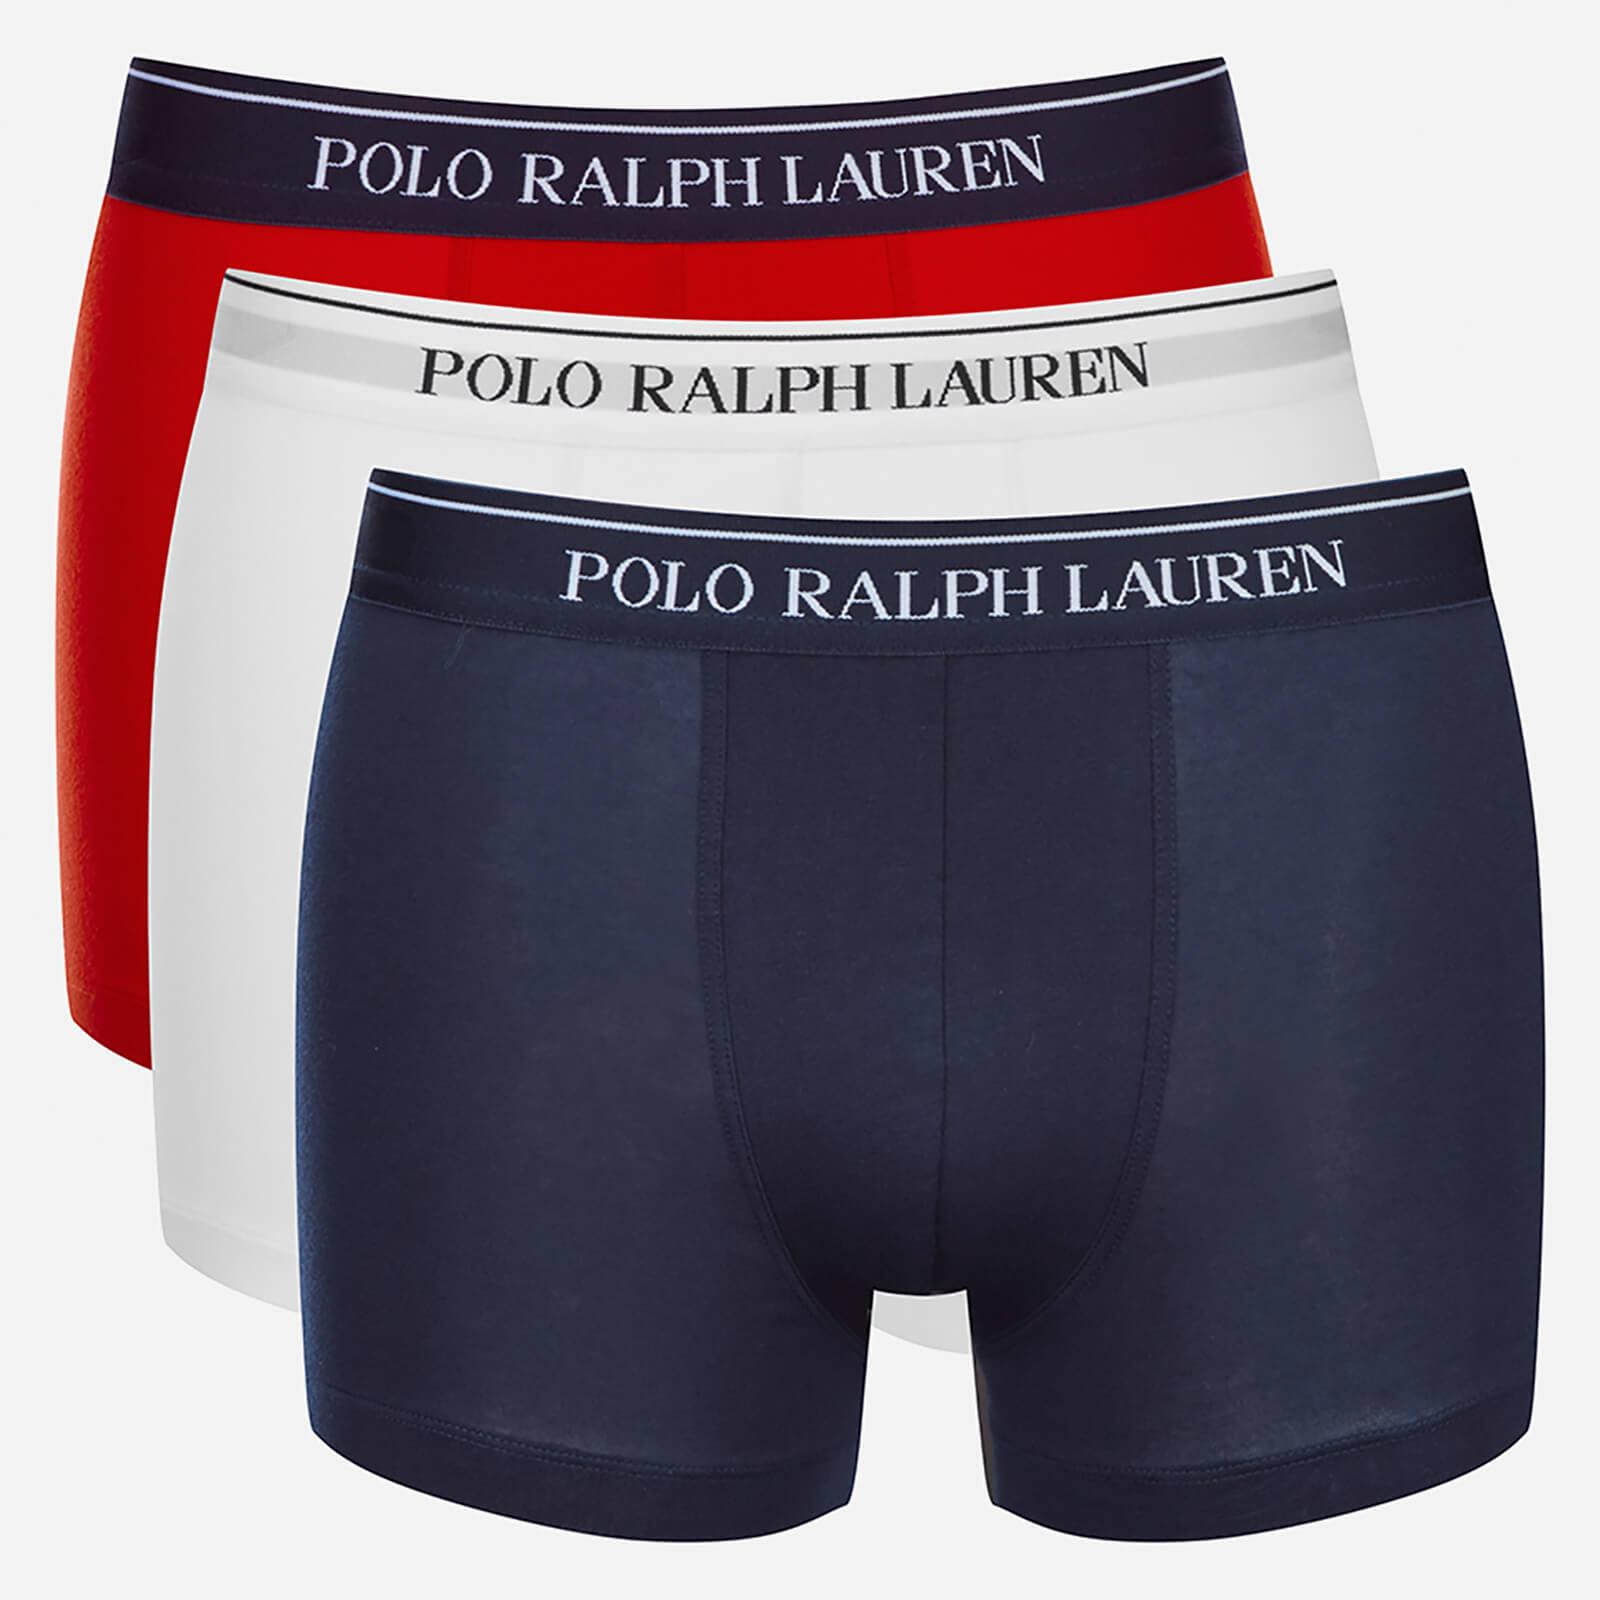 4d92f577a43be3 Polo Ralph Lauren Men's 3 Pack Boxer Shorts - White/Red/Blue - Free UK  Delivery over £50